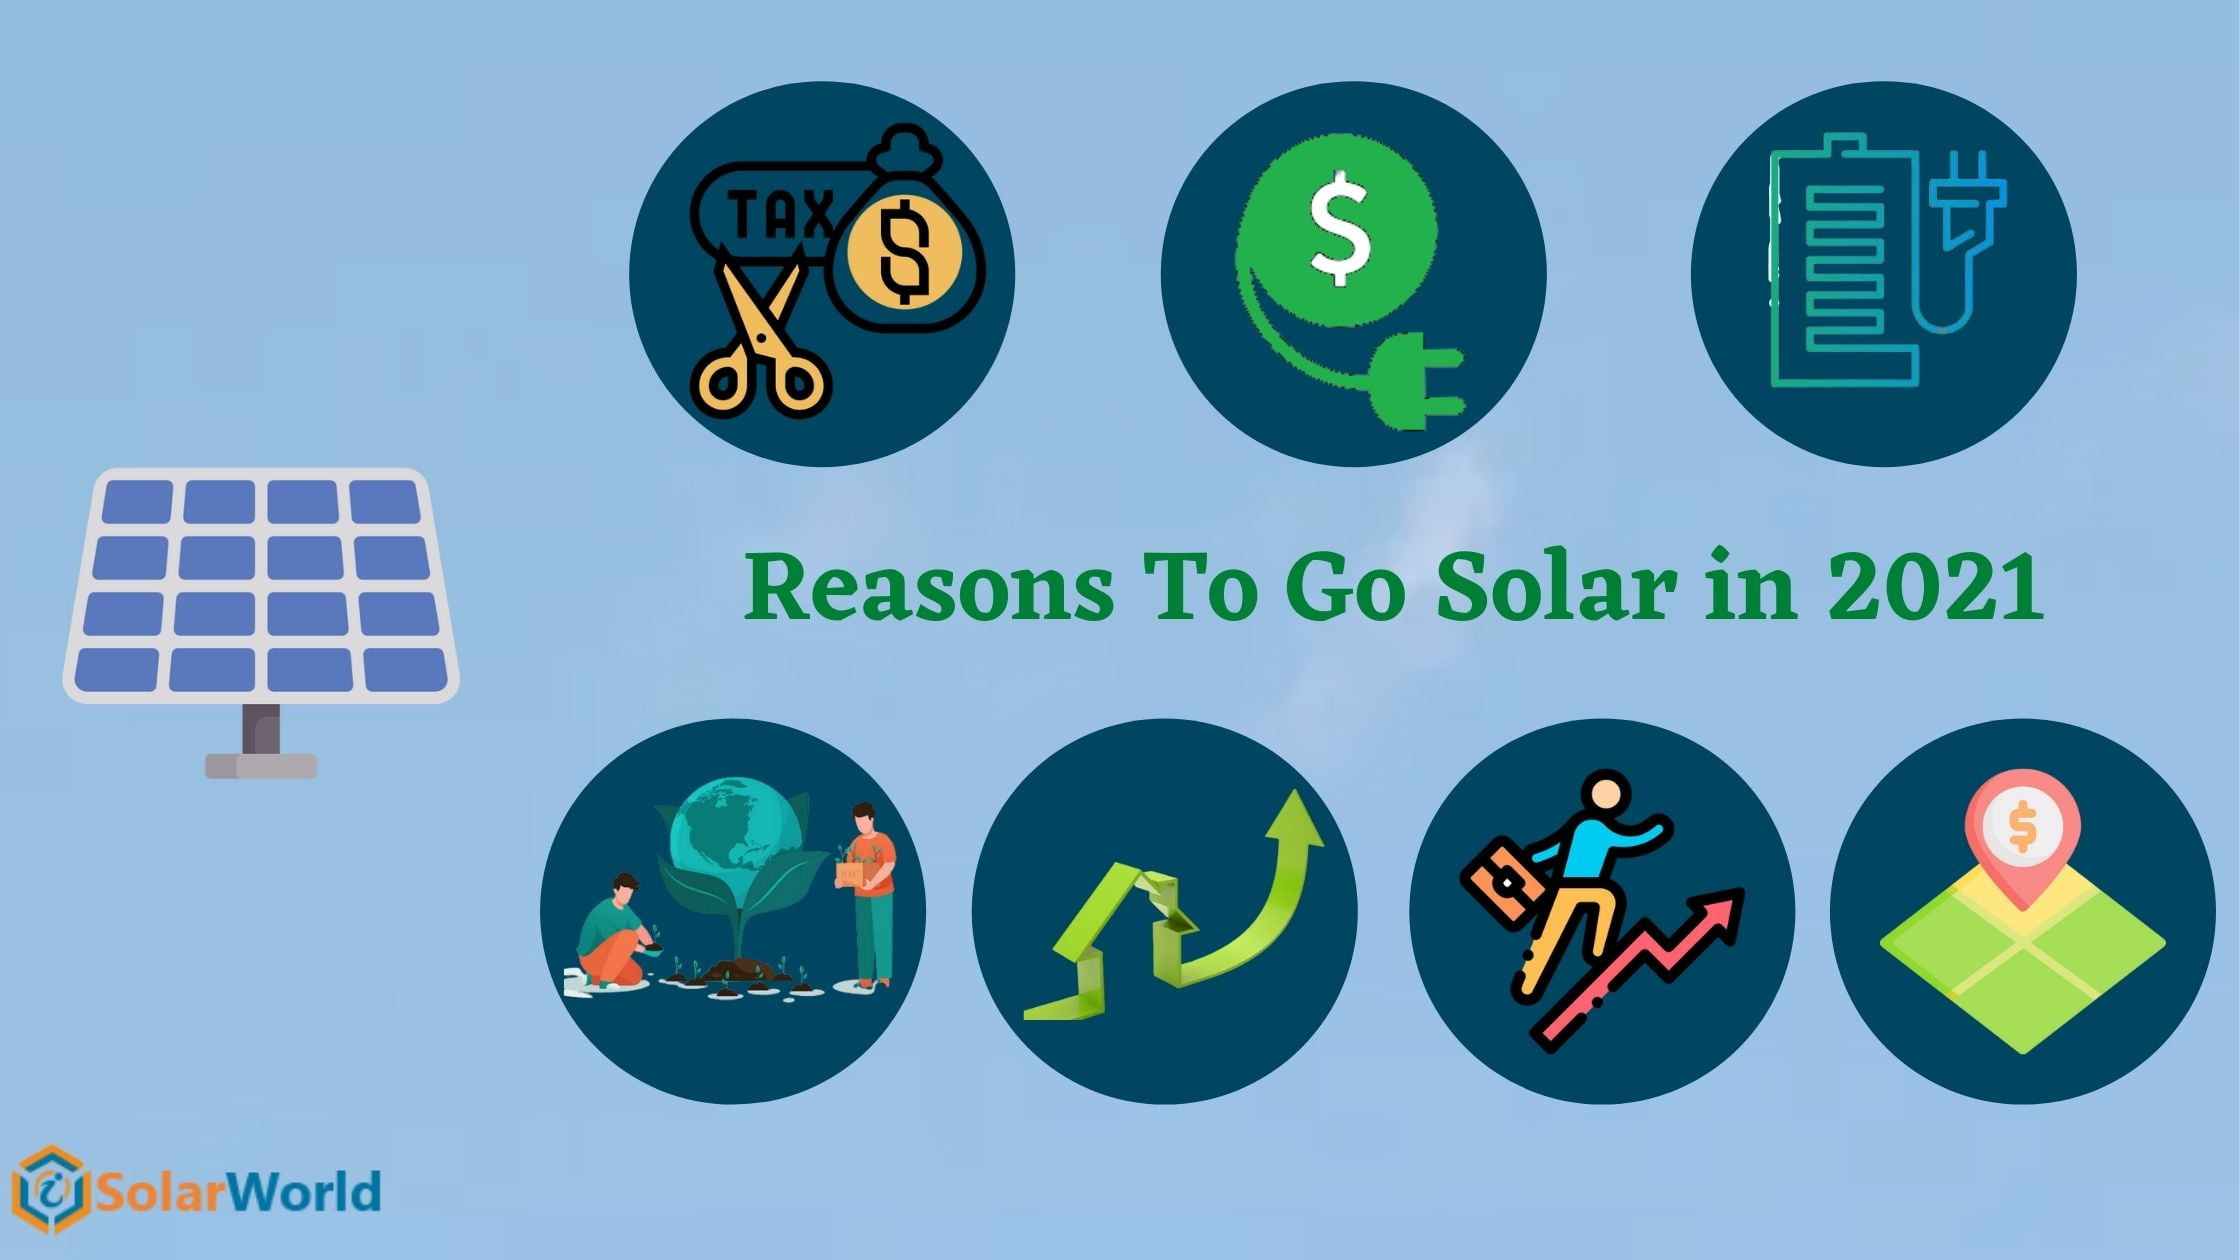 Is going solar worth it? Let's find out the reasons to go solar in 2021 and explore the fun facts